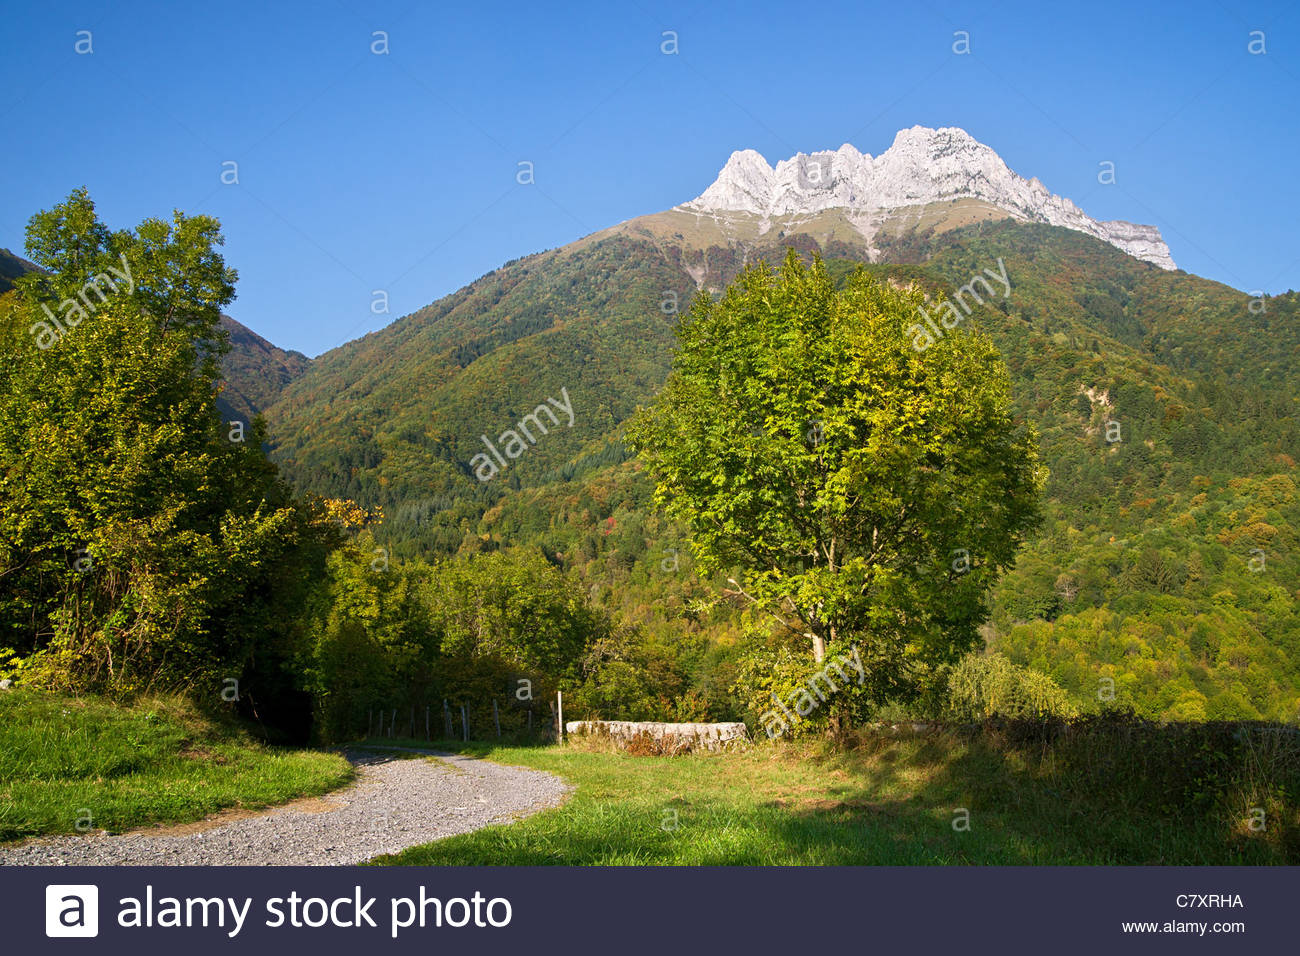 Dent d'Arclusaz in the Bauges mountain range near Saint Pierre d'Albigny - Savoy - France - Stock Image